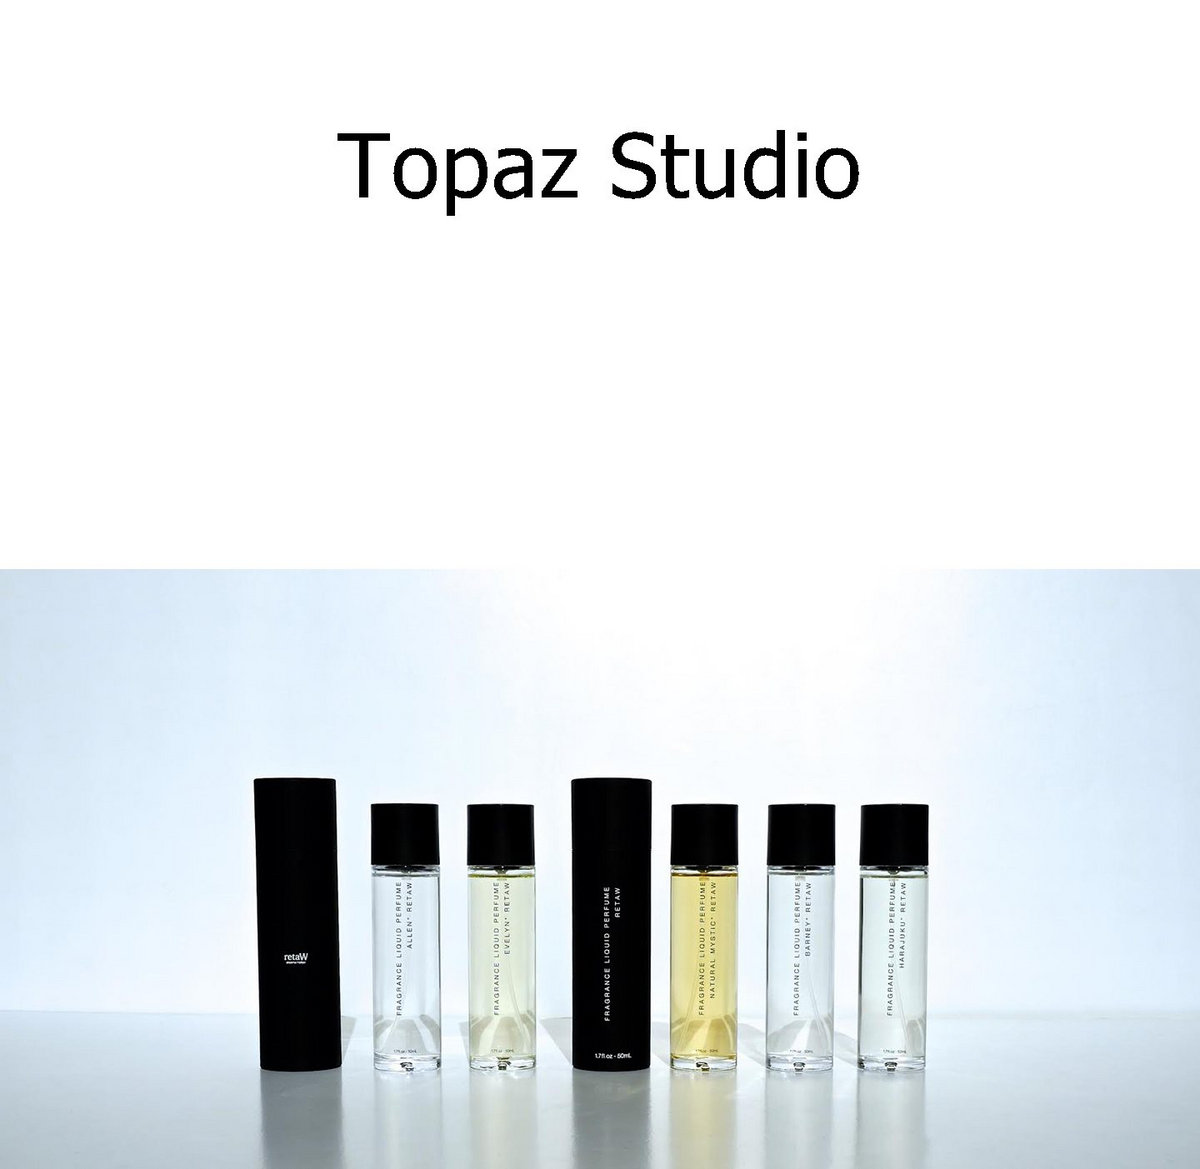 VERS-1 11 8-TOPAZ-STUDIO ZIP how download on OS X | imblinpelavi